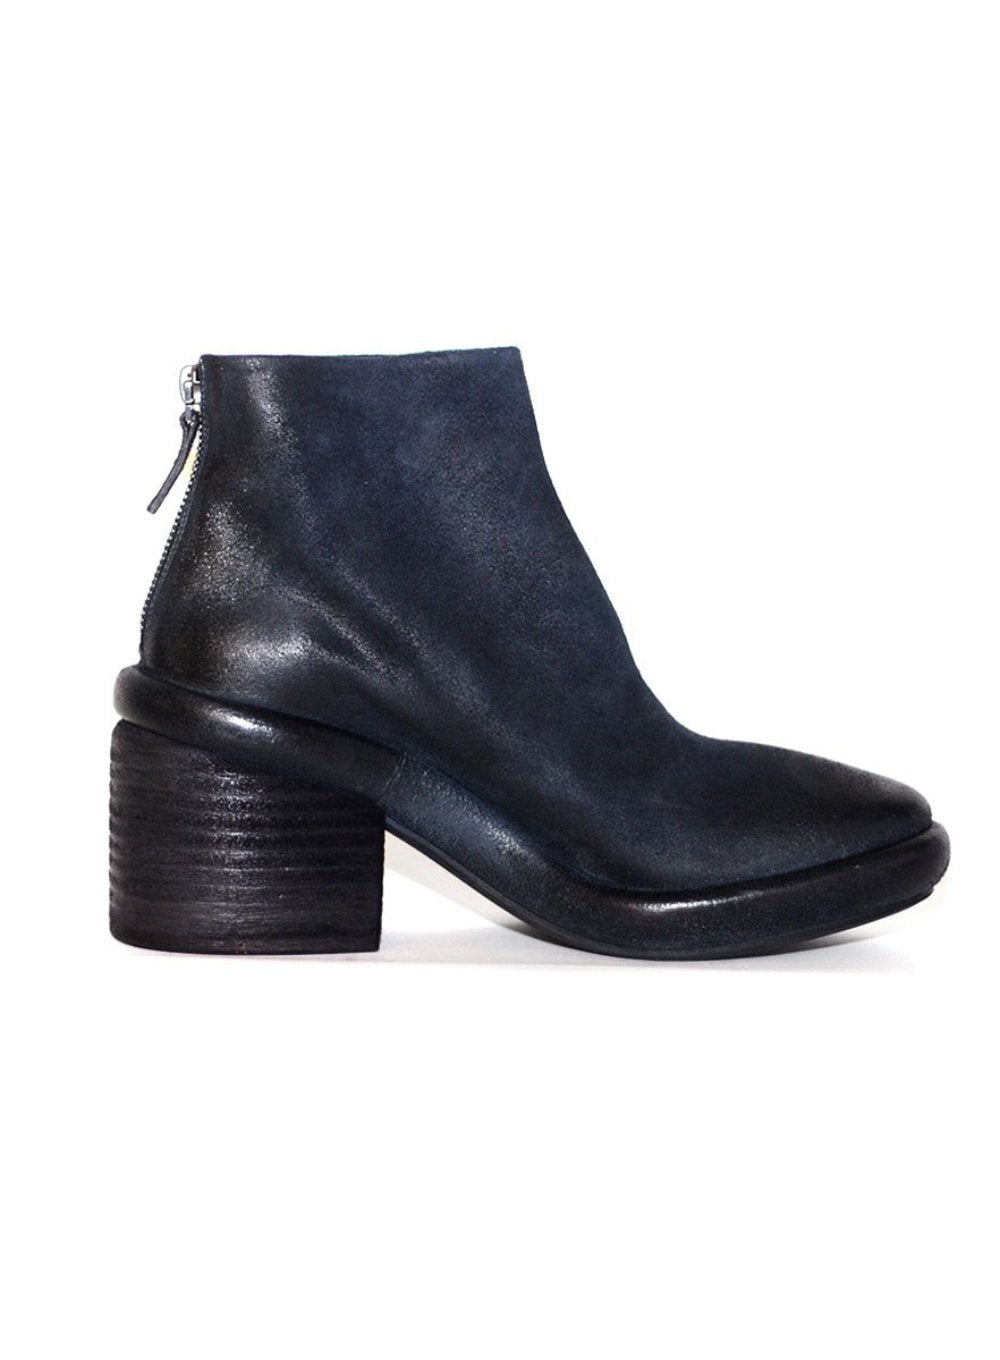 MARSÈLL | Salvagente Leather Ankle Boots in Navy